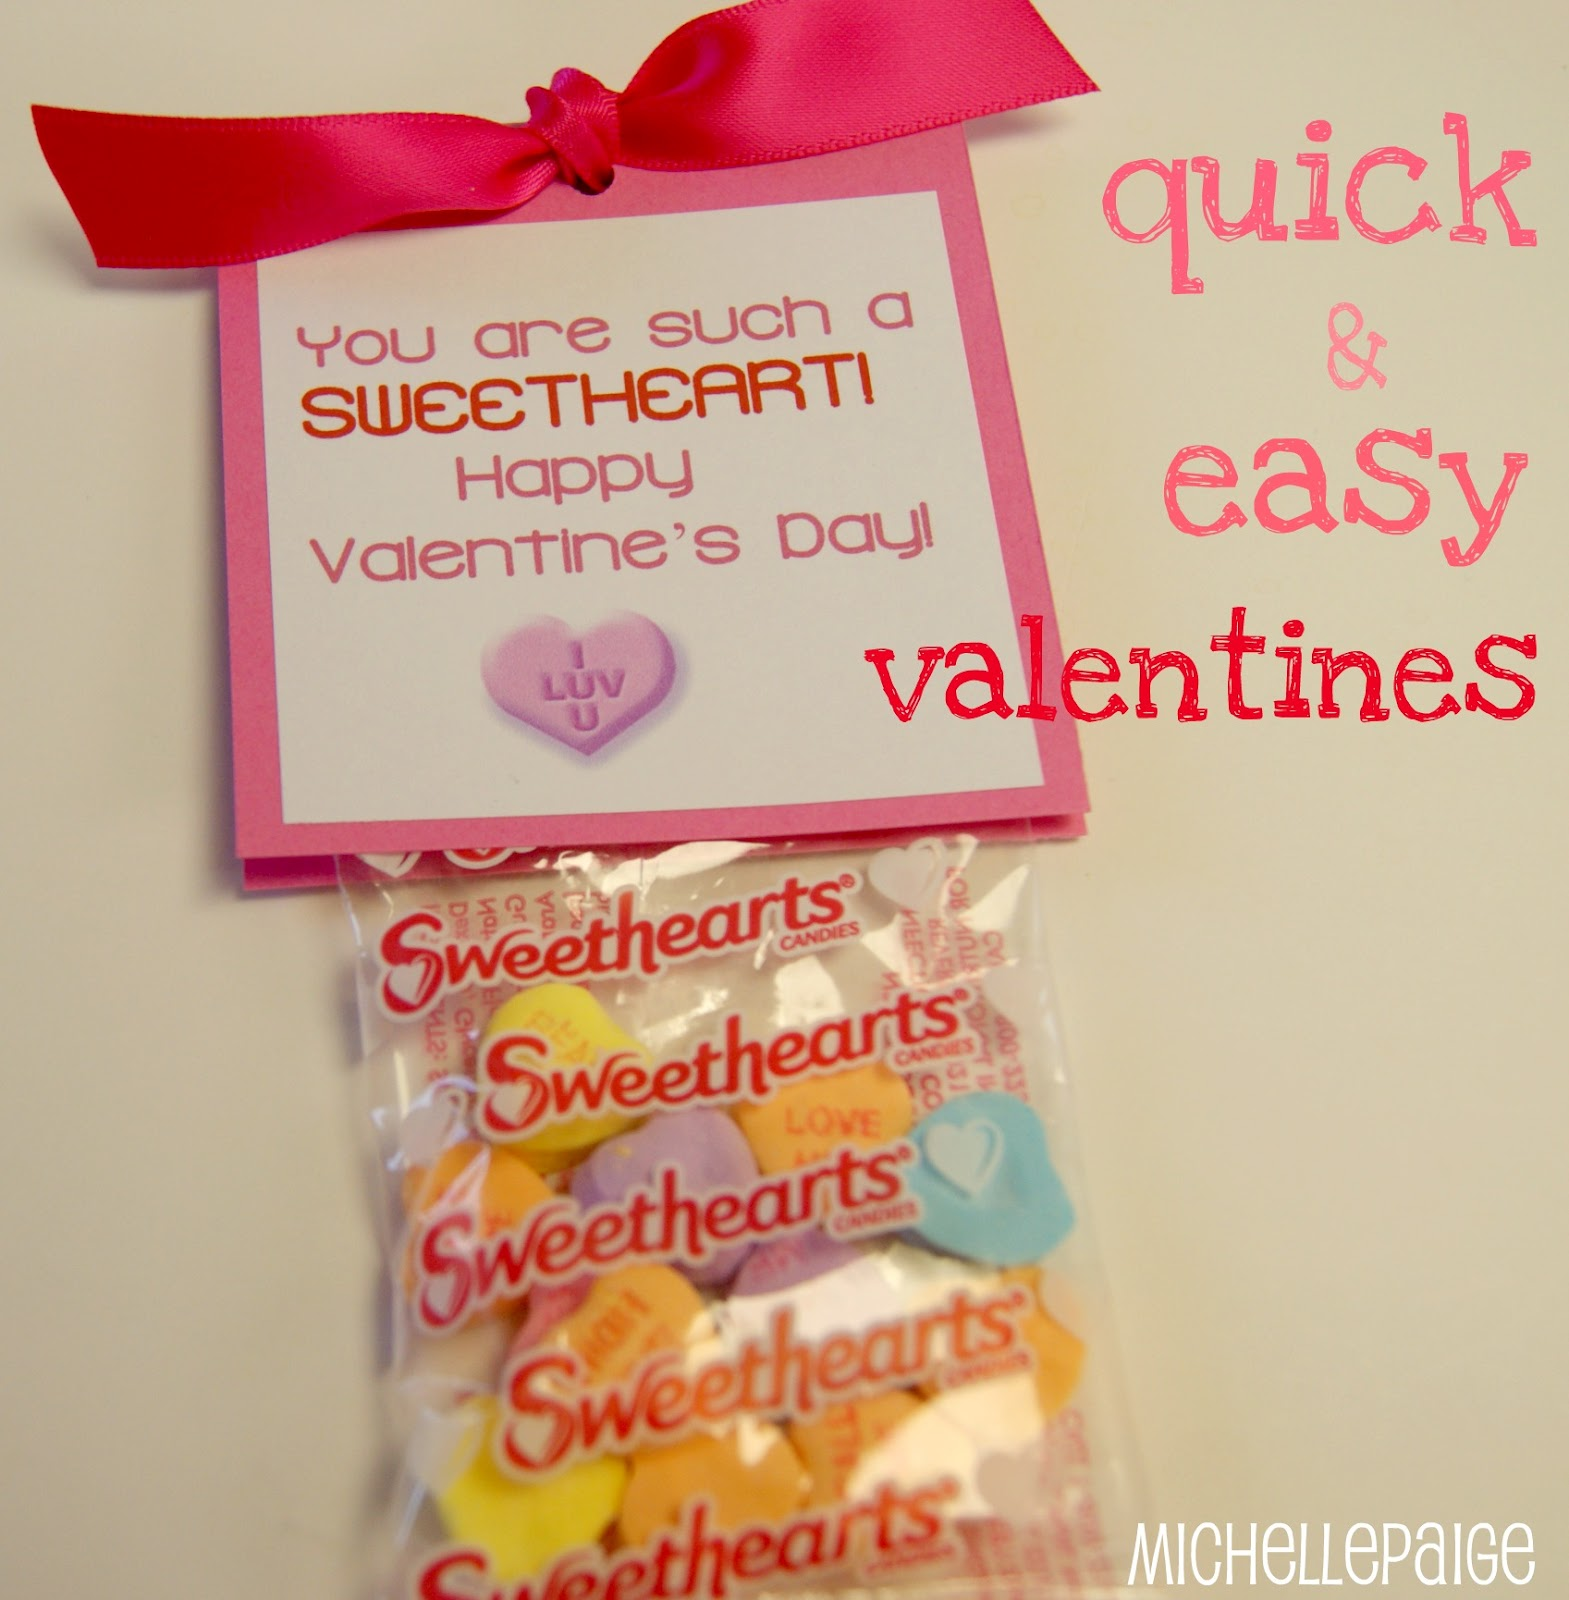 michelle paige blogs  quick sweetheart valentines in 5 steps